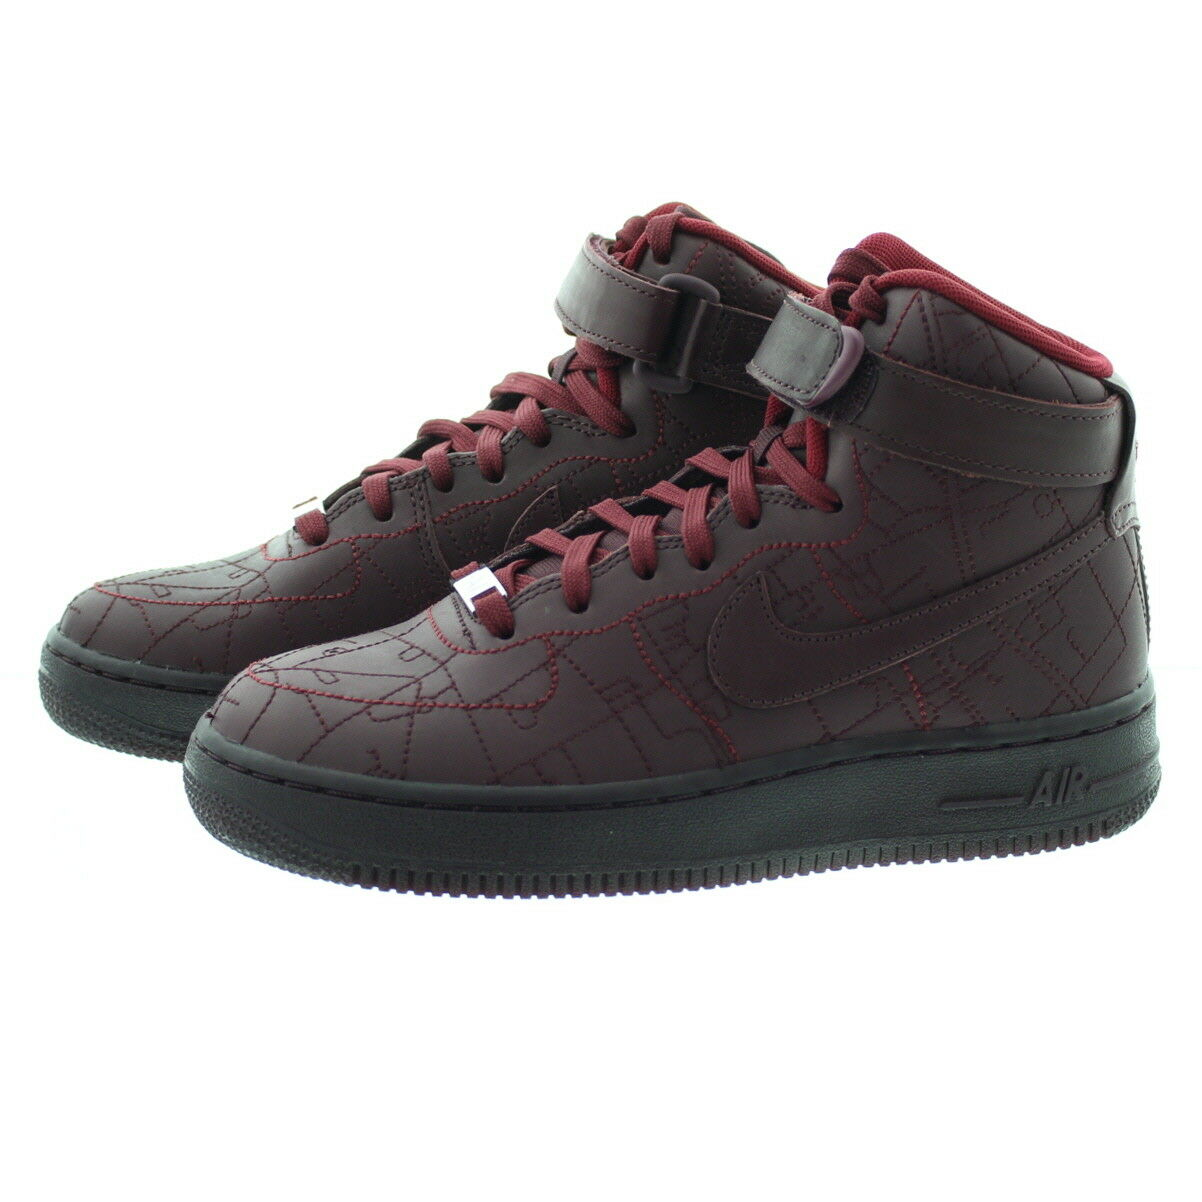 Nike air force 1 hoch oben 704010 Damenss fw - basketball - schuhe, schuhe